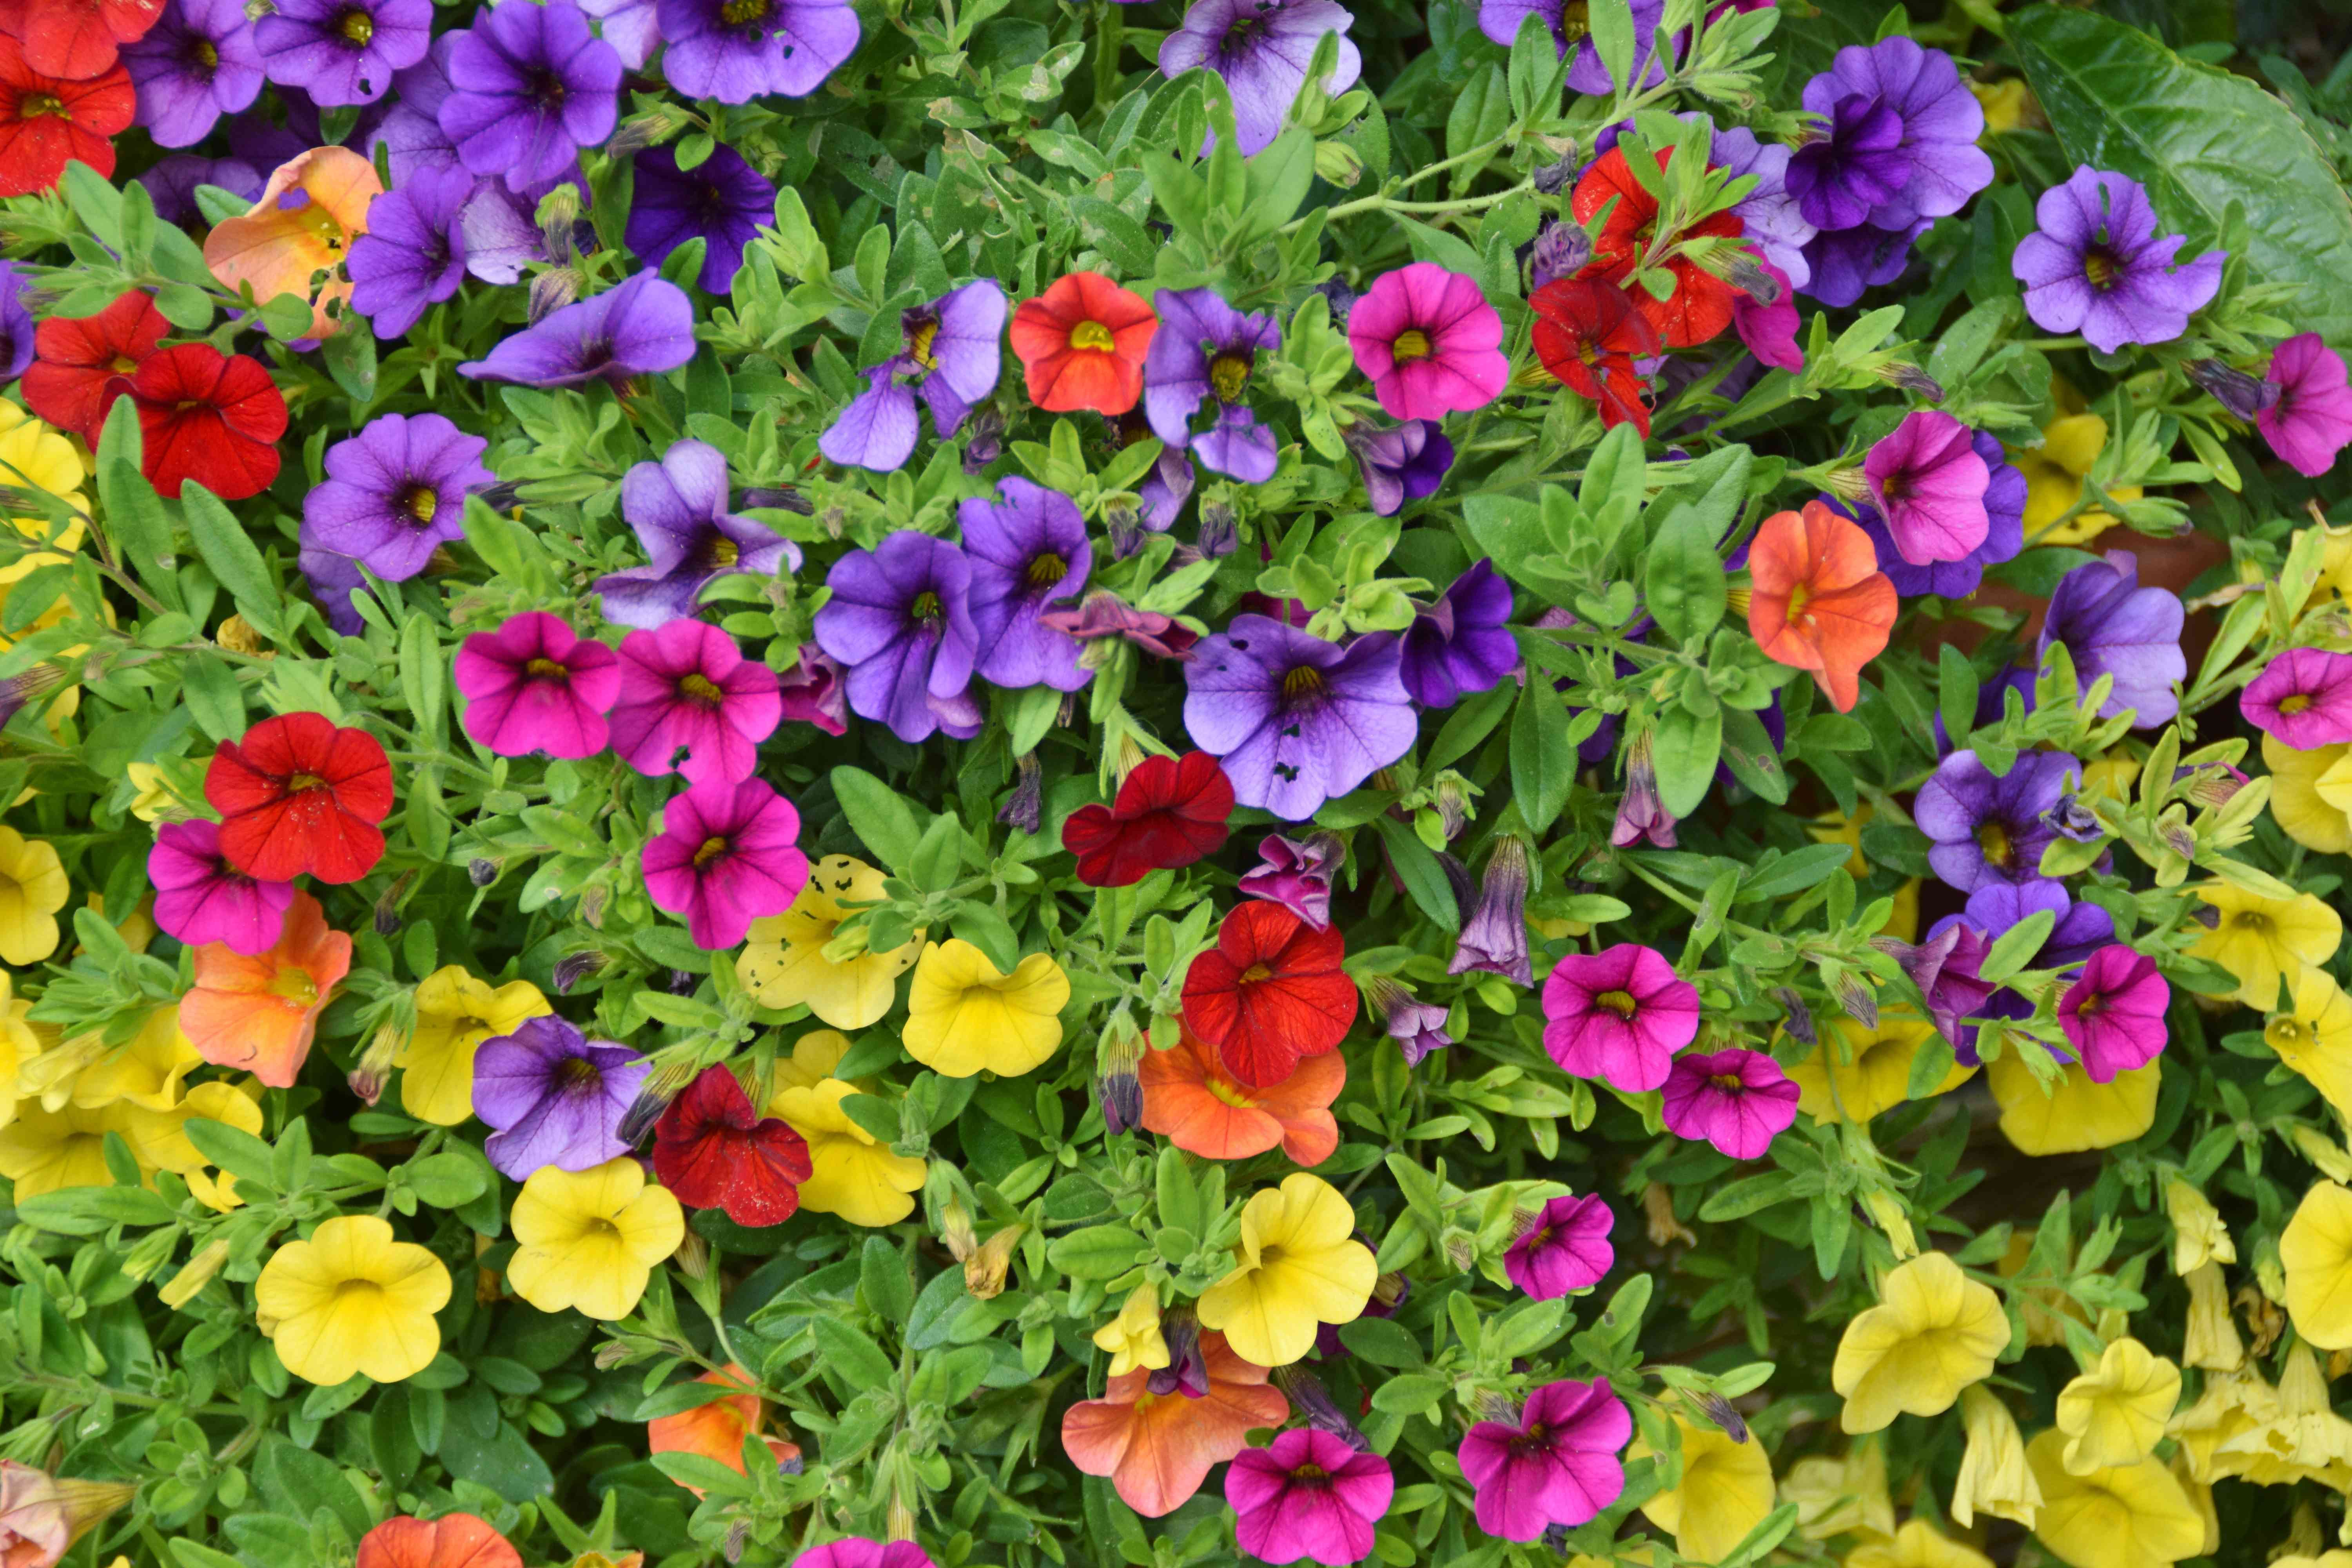 petunias of different colors